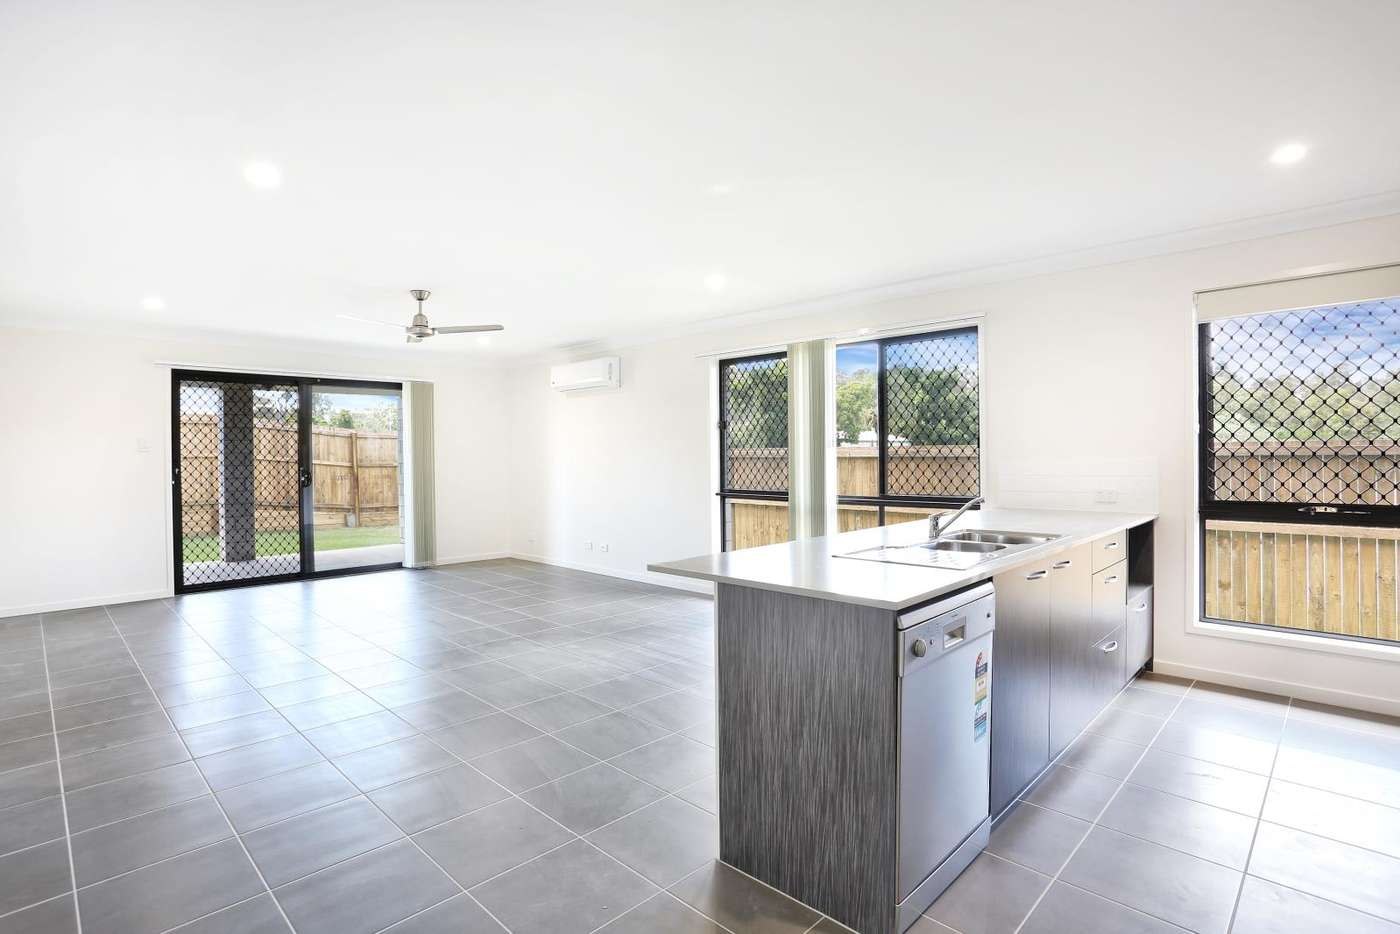 Seventh view of Homely house listing, 1 Woodrow Street, Pimpama QLD 4209